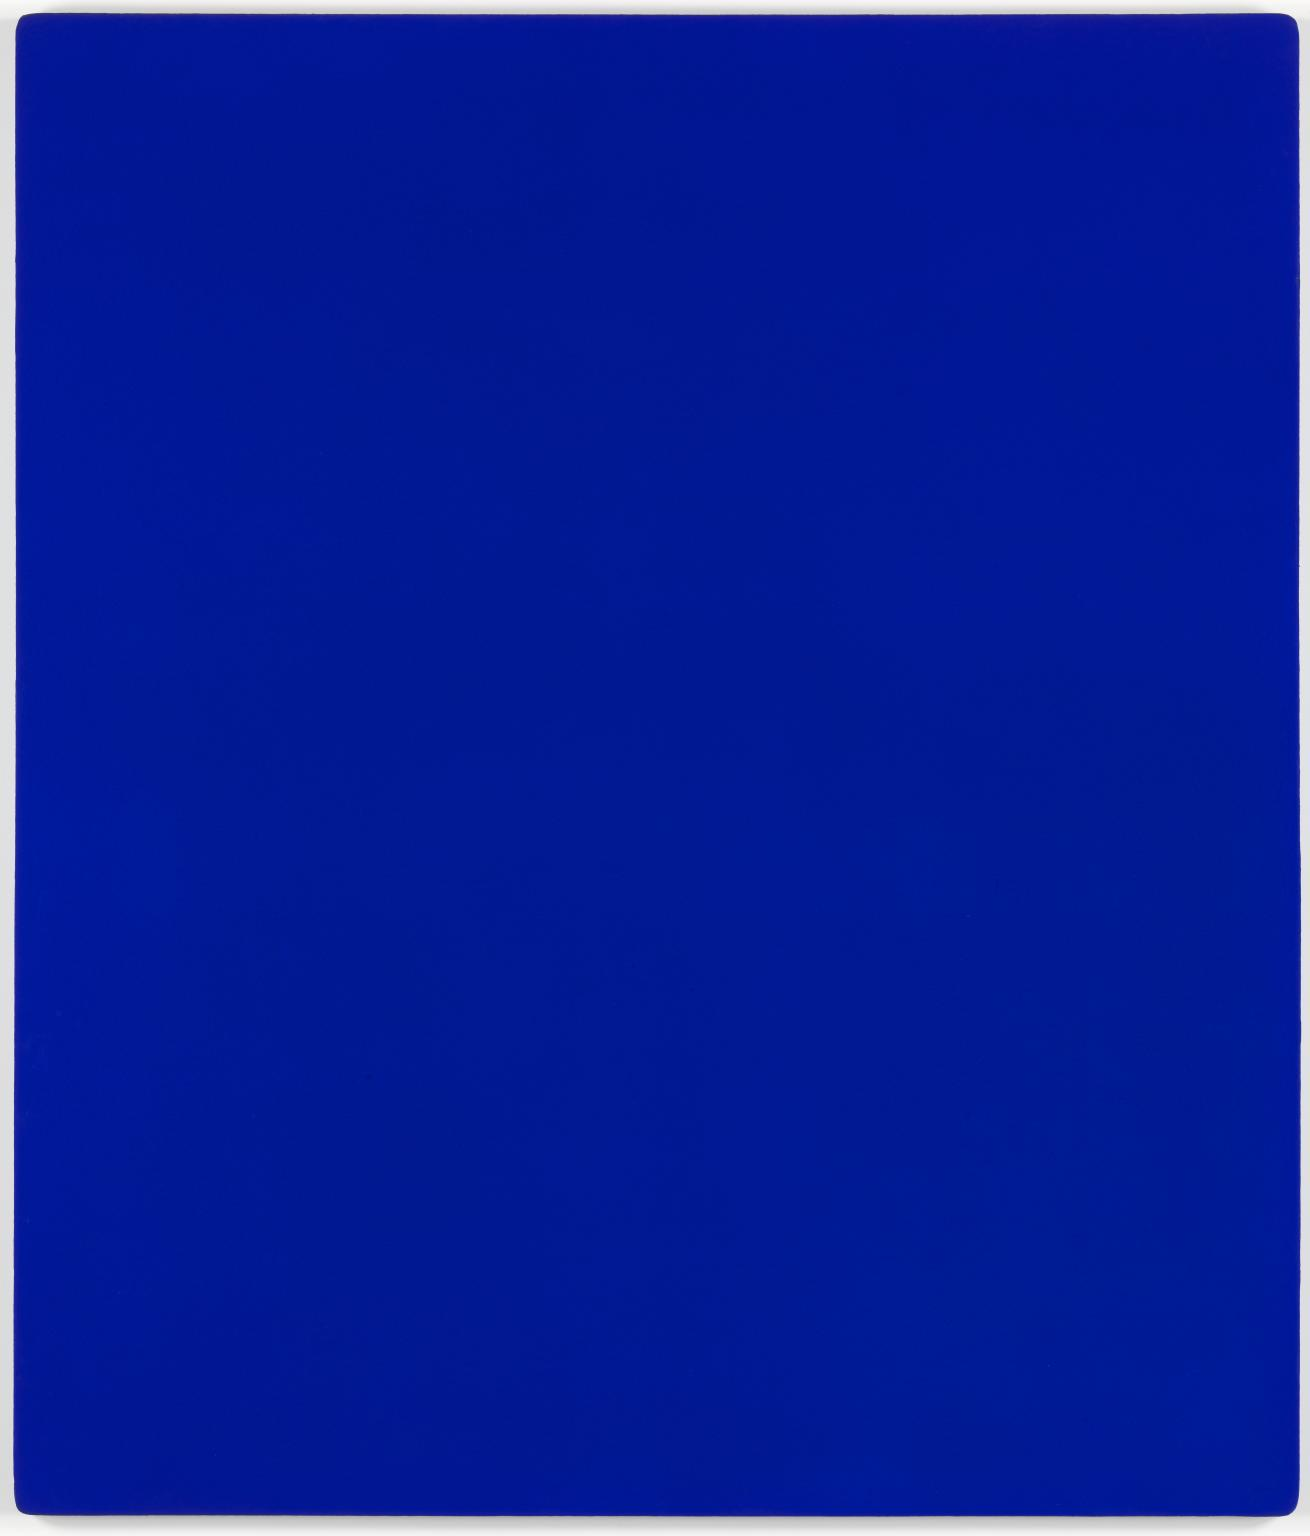 IKB 79. 1959, Yves Klein, (Image courtesy of the Tate)